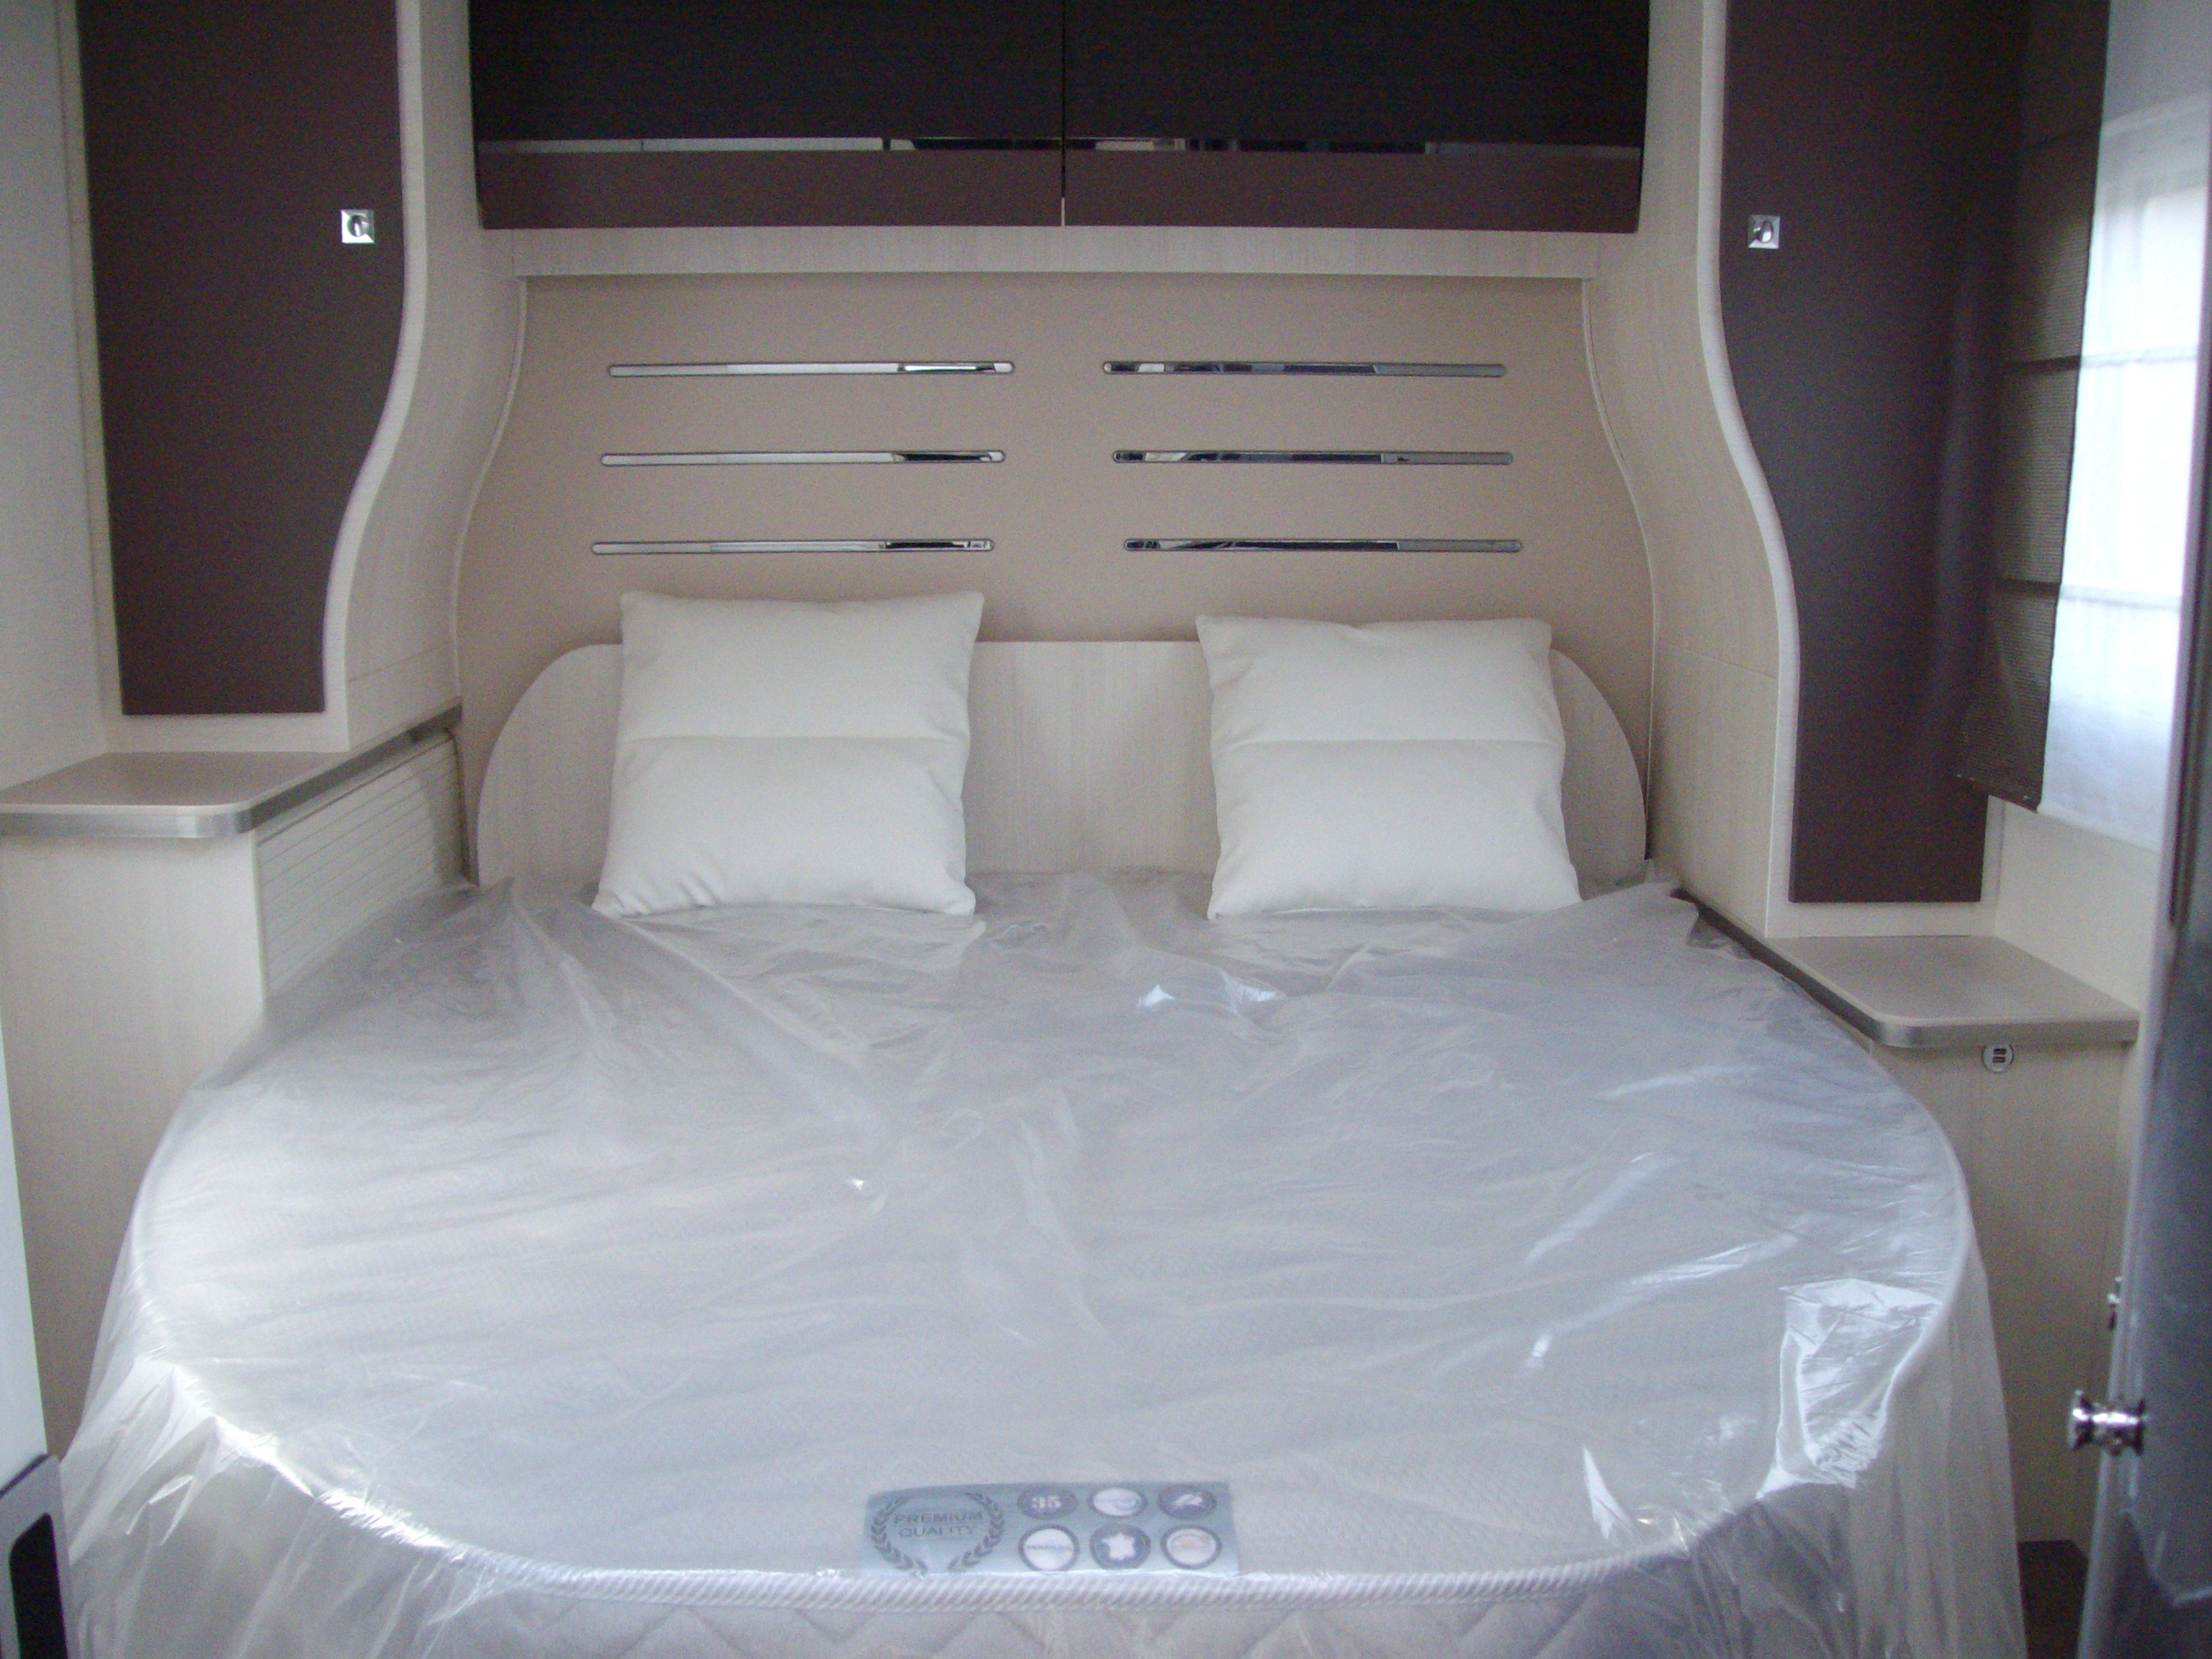 Chausson Welcome 718 Xlb - 5